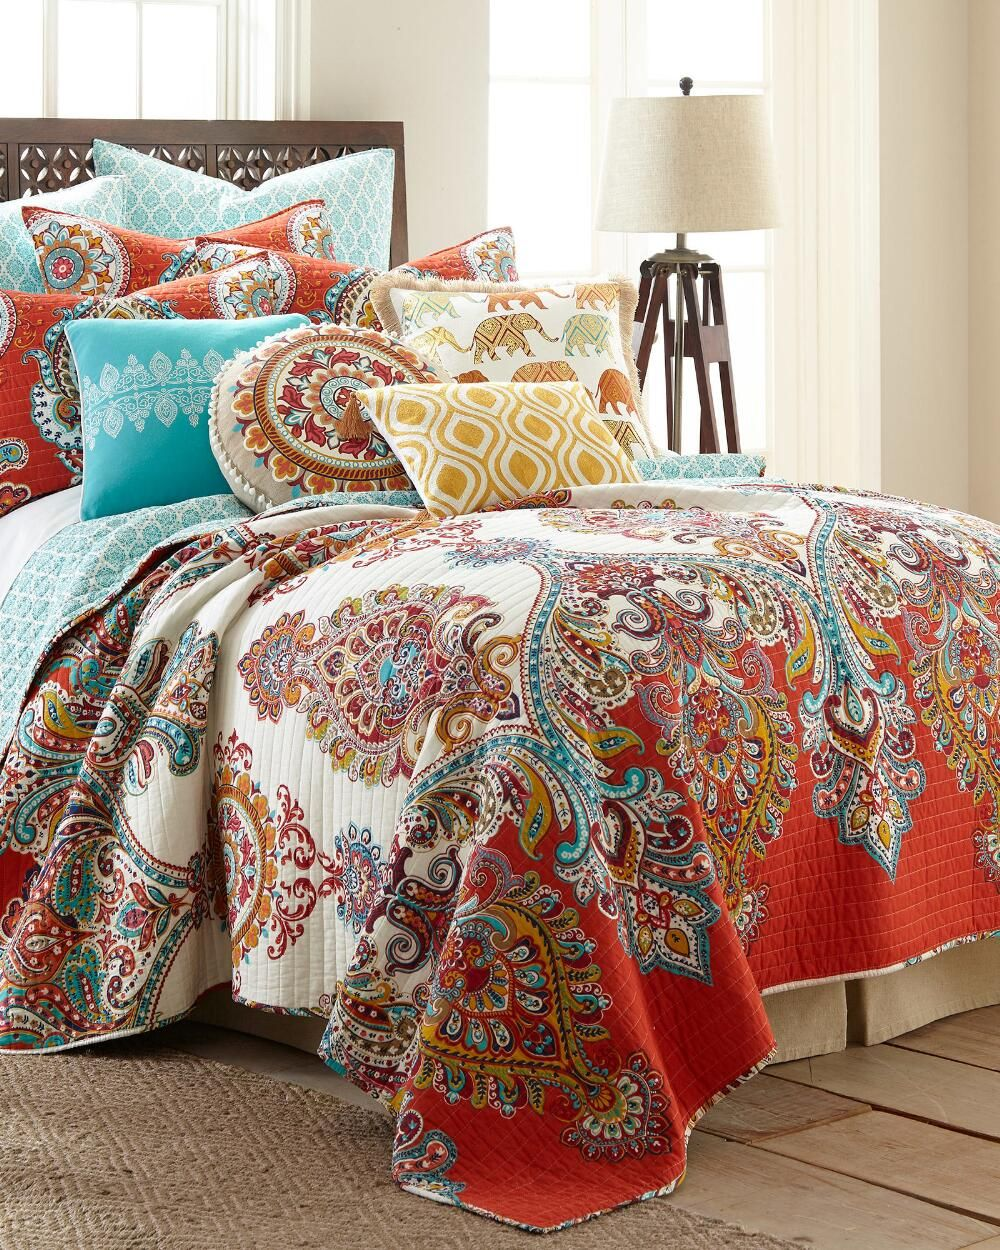 Paisley Luxury Quilt Collection-Quilts-Bedding-Bed & Bath | Stein ... : designer quilts bedding - Adamdwight.com